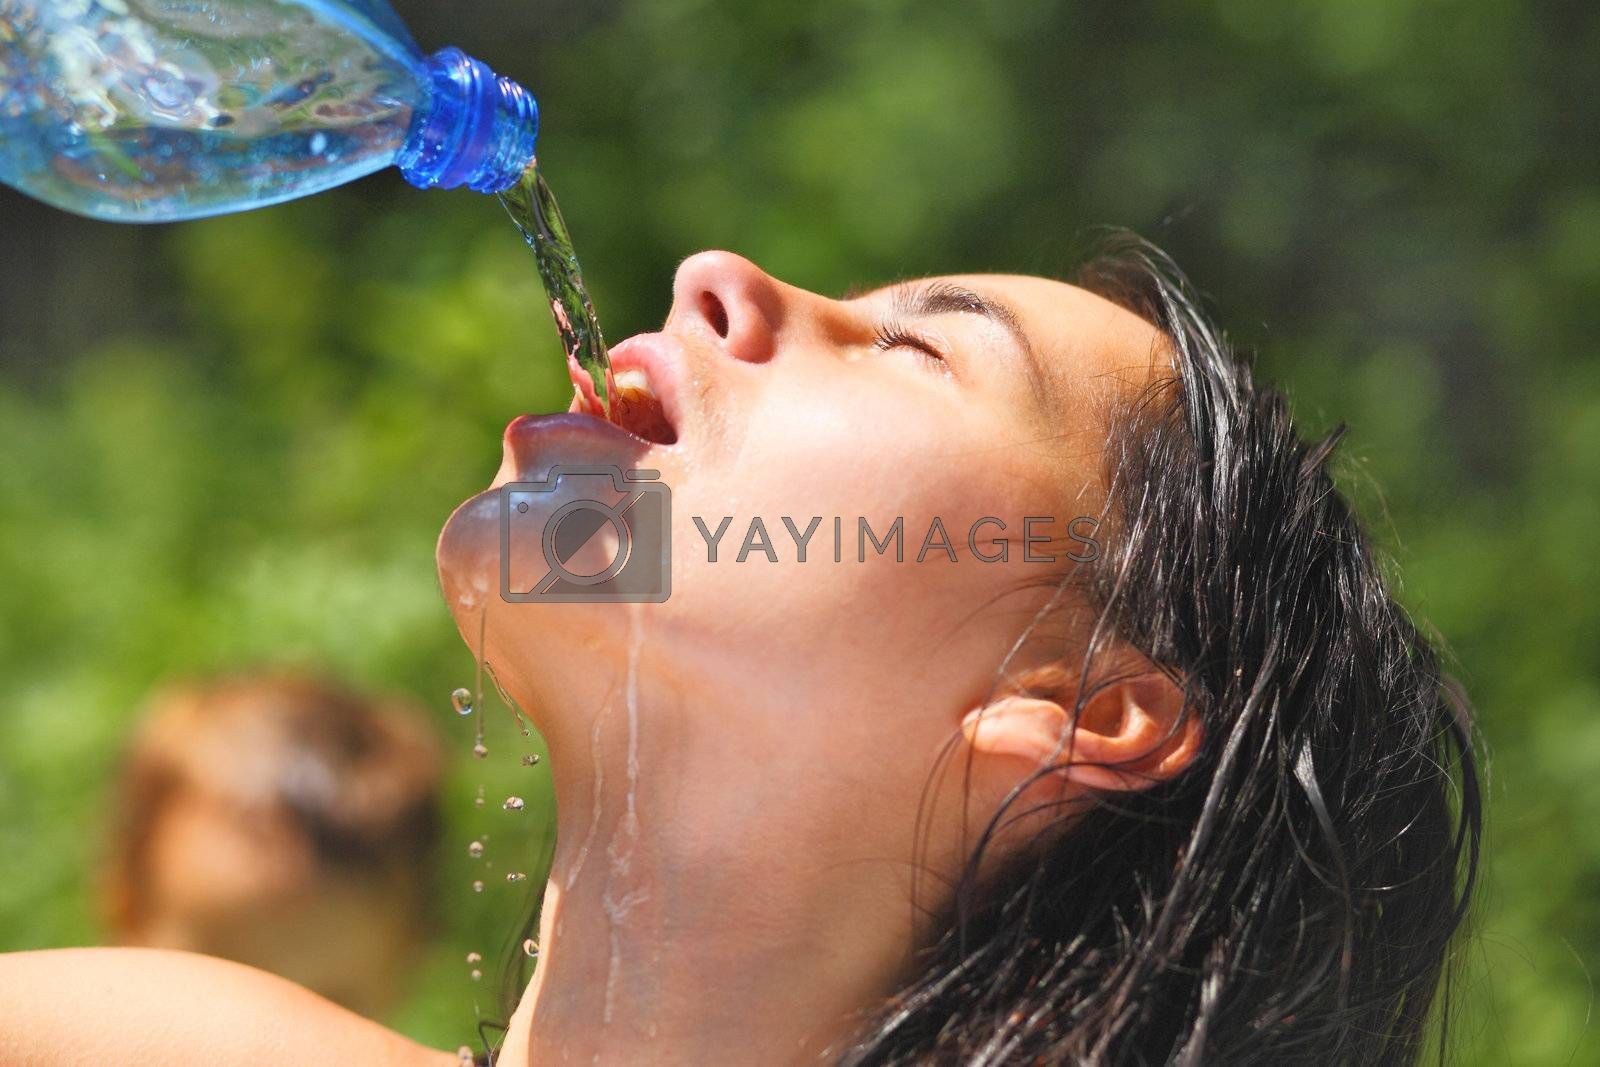 Young woman drinking water outdoors. She has a thirst